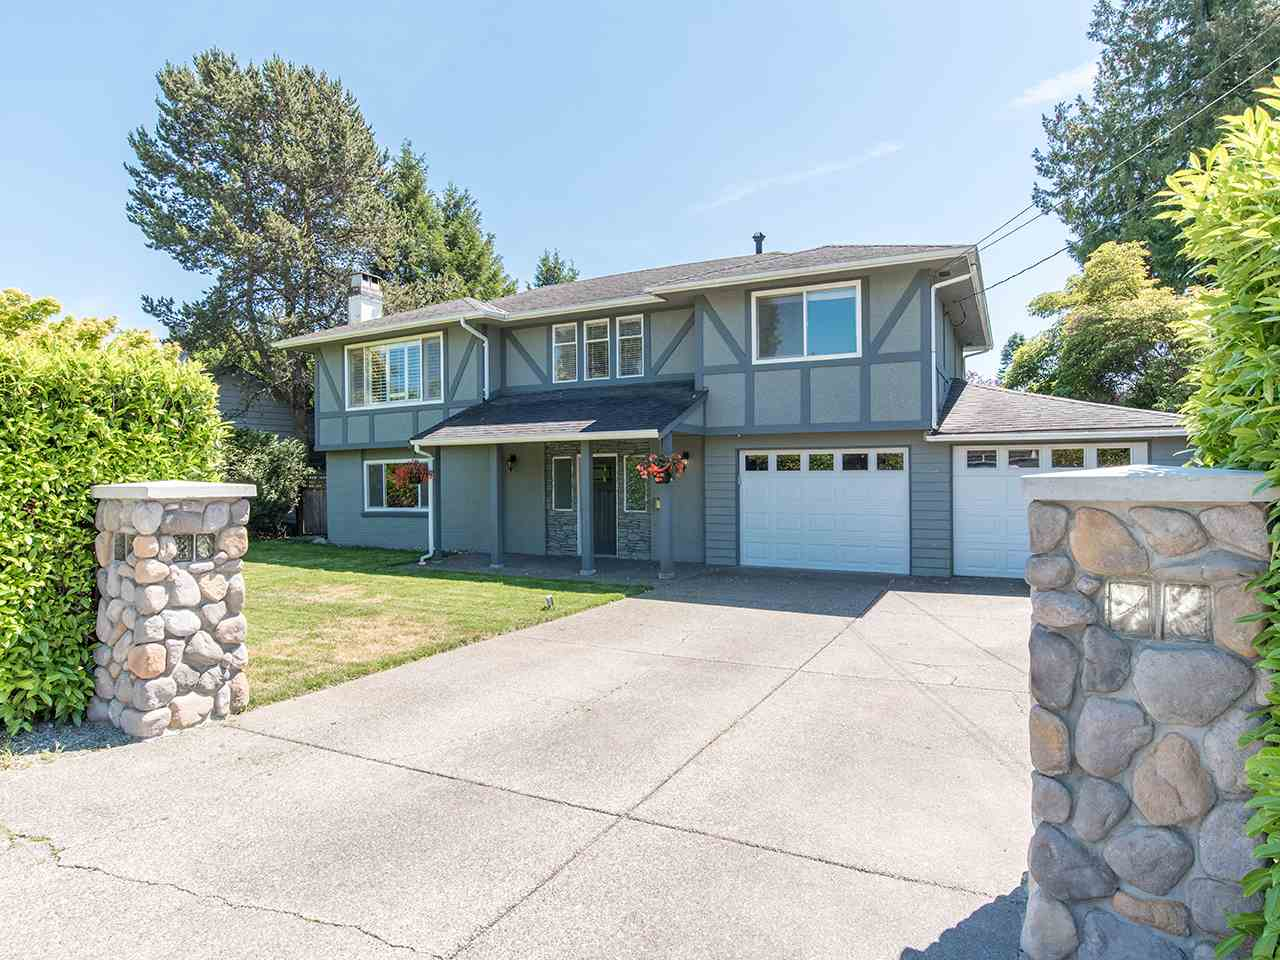 Main Photo: 5274 BELAIR CRESCENT in Delta: Cliff Drive House for sale (Tsawwassen)  : MLS® # R2200784